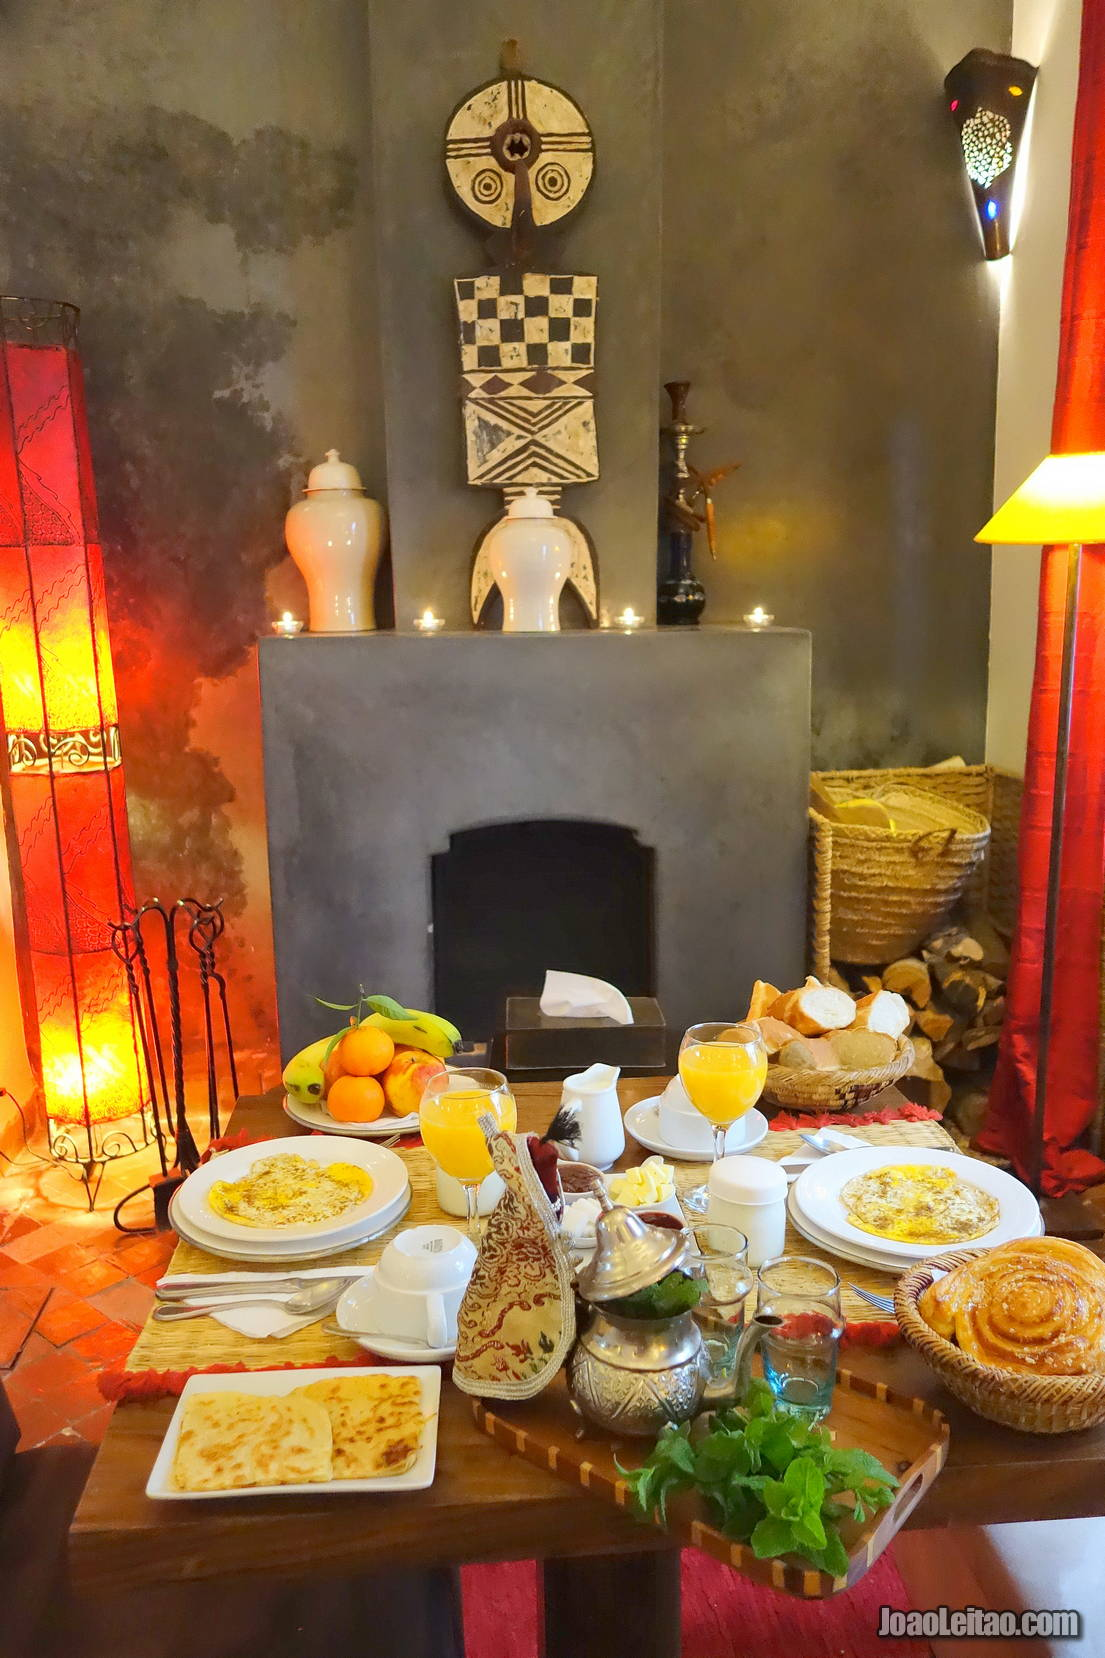 Breakfast in Dar Zaman - Riad Marrakesh Morocco